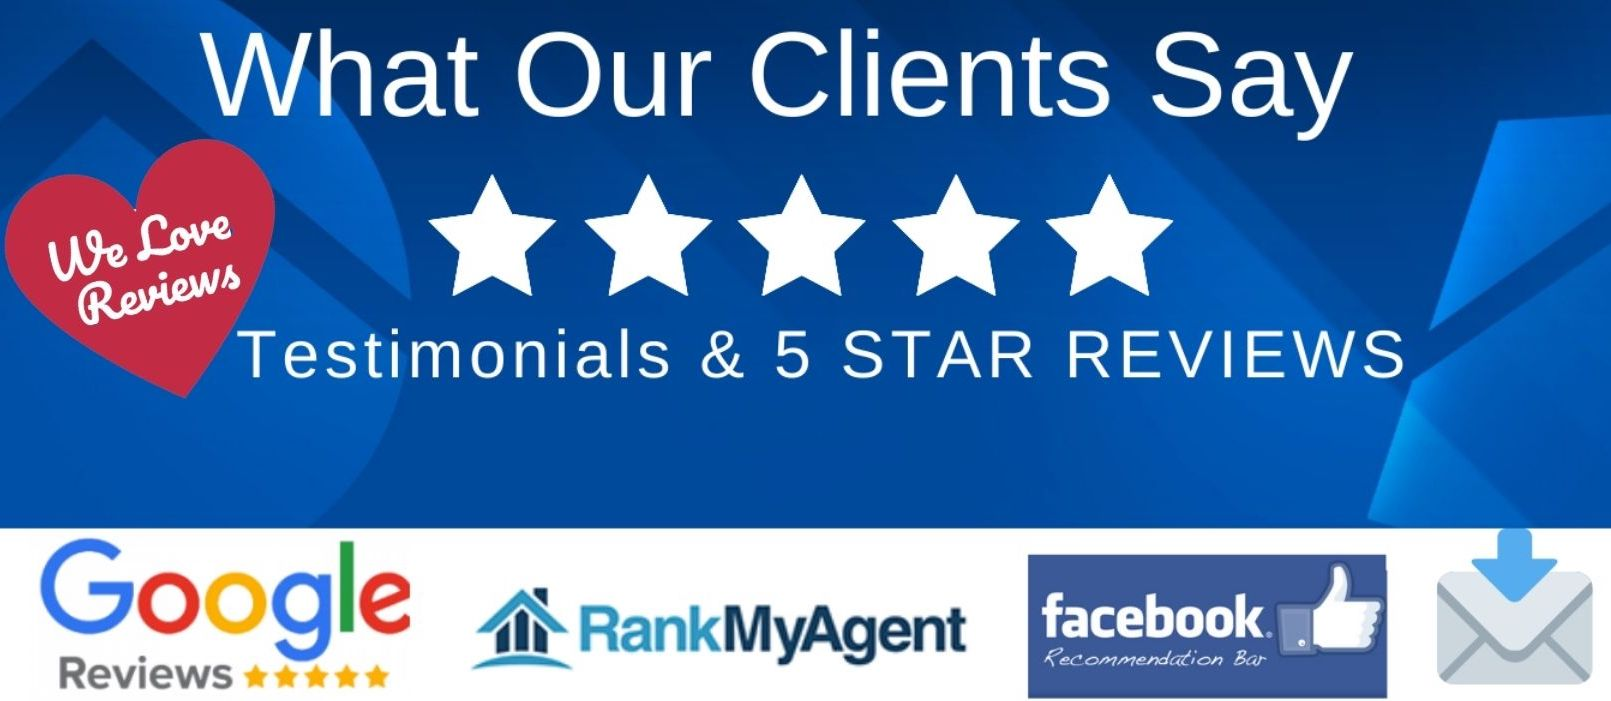 Dwight Streu's 5 Star Reviews and Testimonials, We Love Reviews